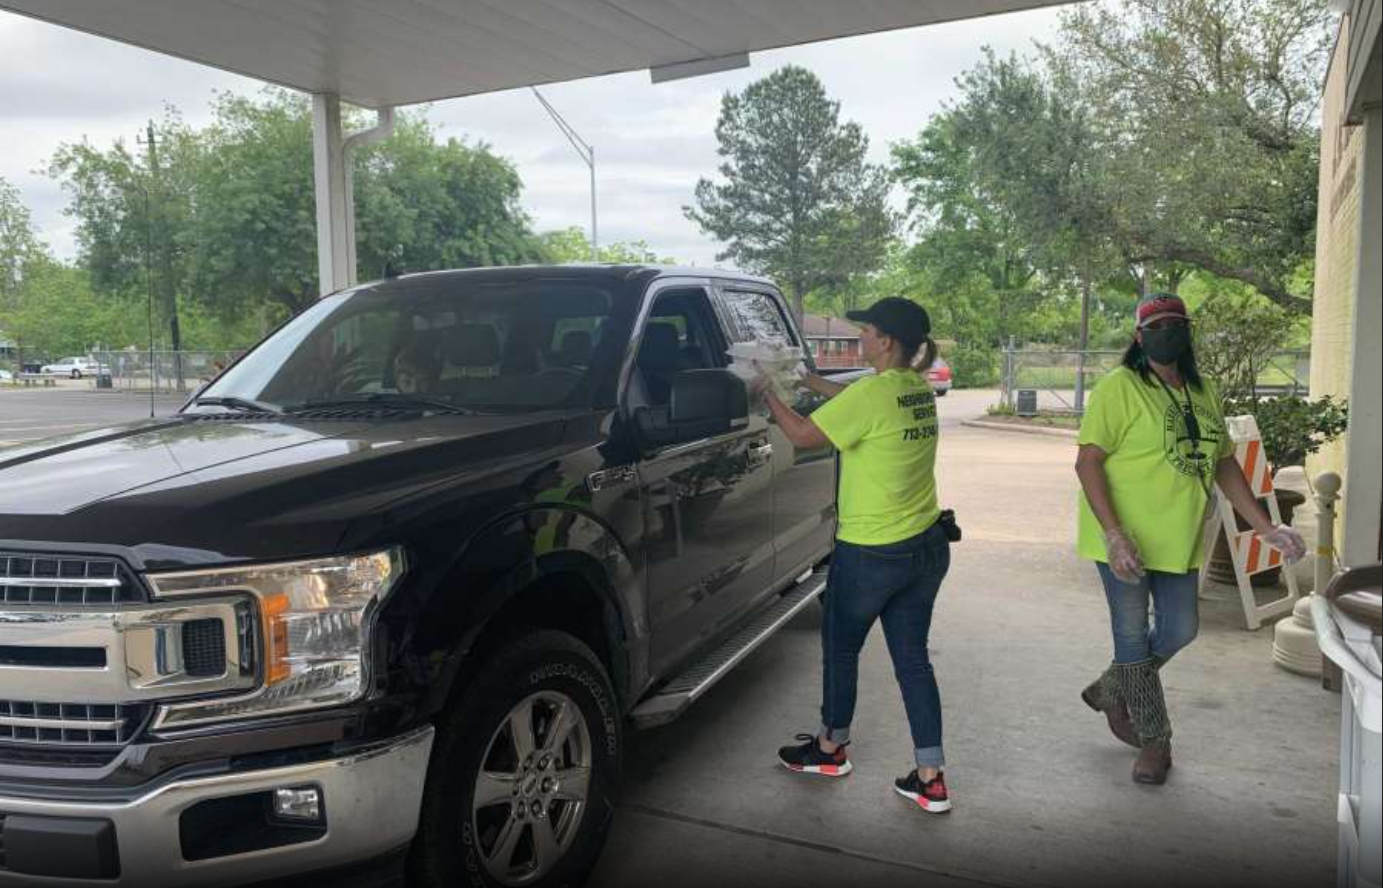 A Harris County staff member delivers containers of food to an individual in a black truck at a drive-thru food distribution centre.